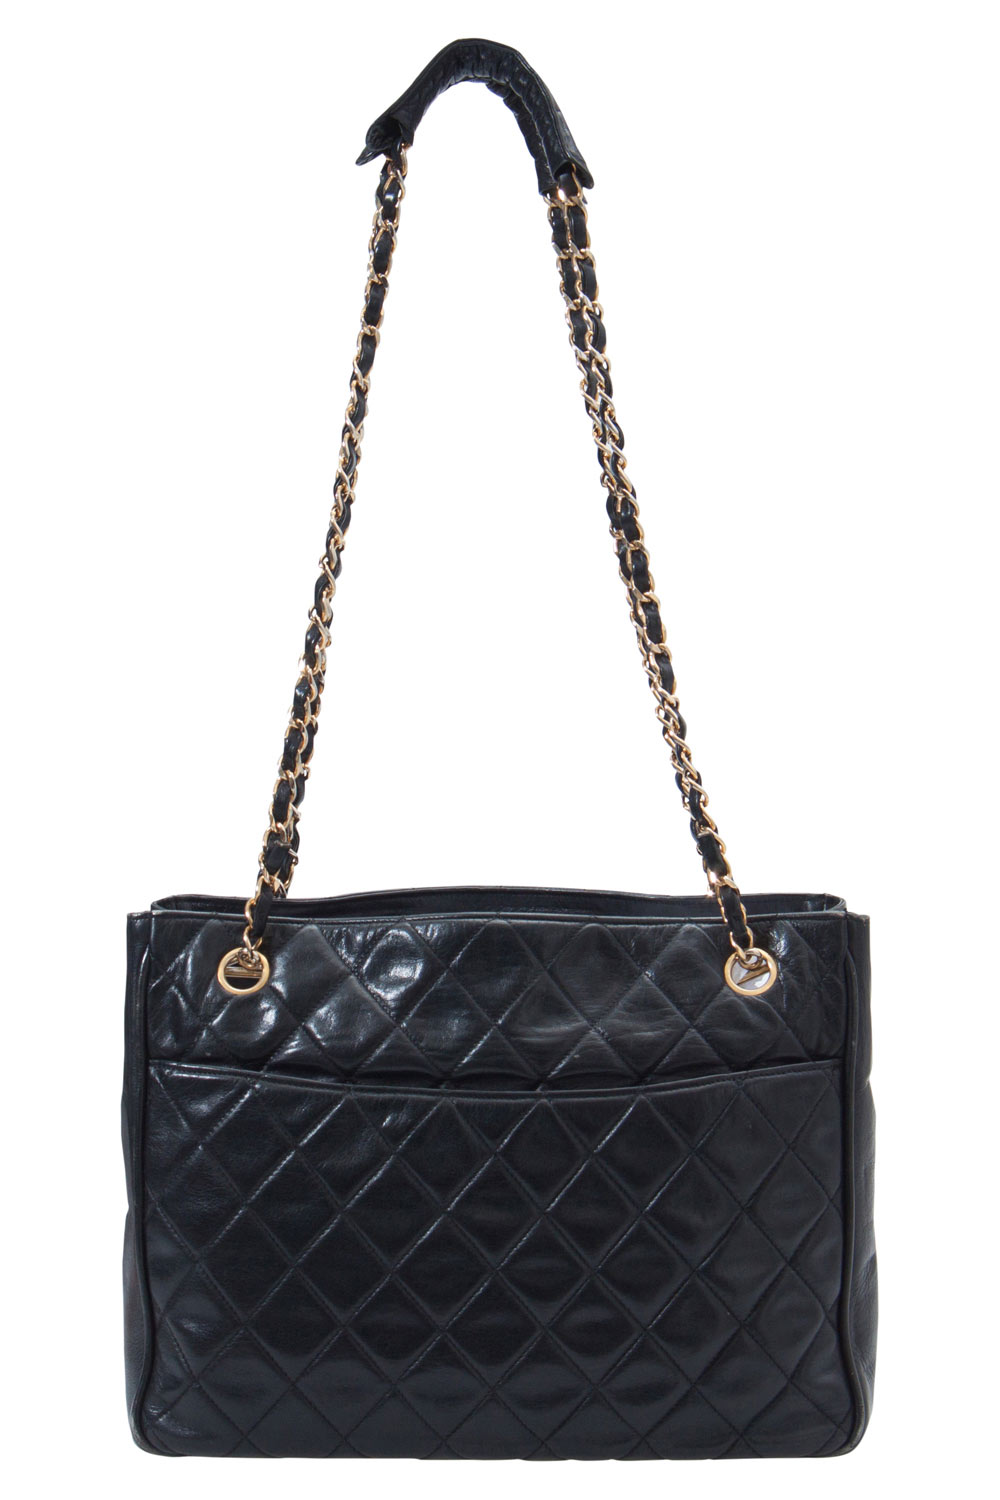 Chanel Black Quilted Leather Vintage Tote